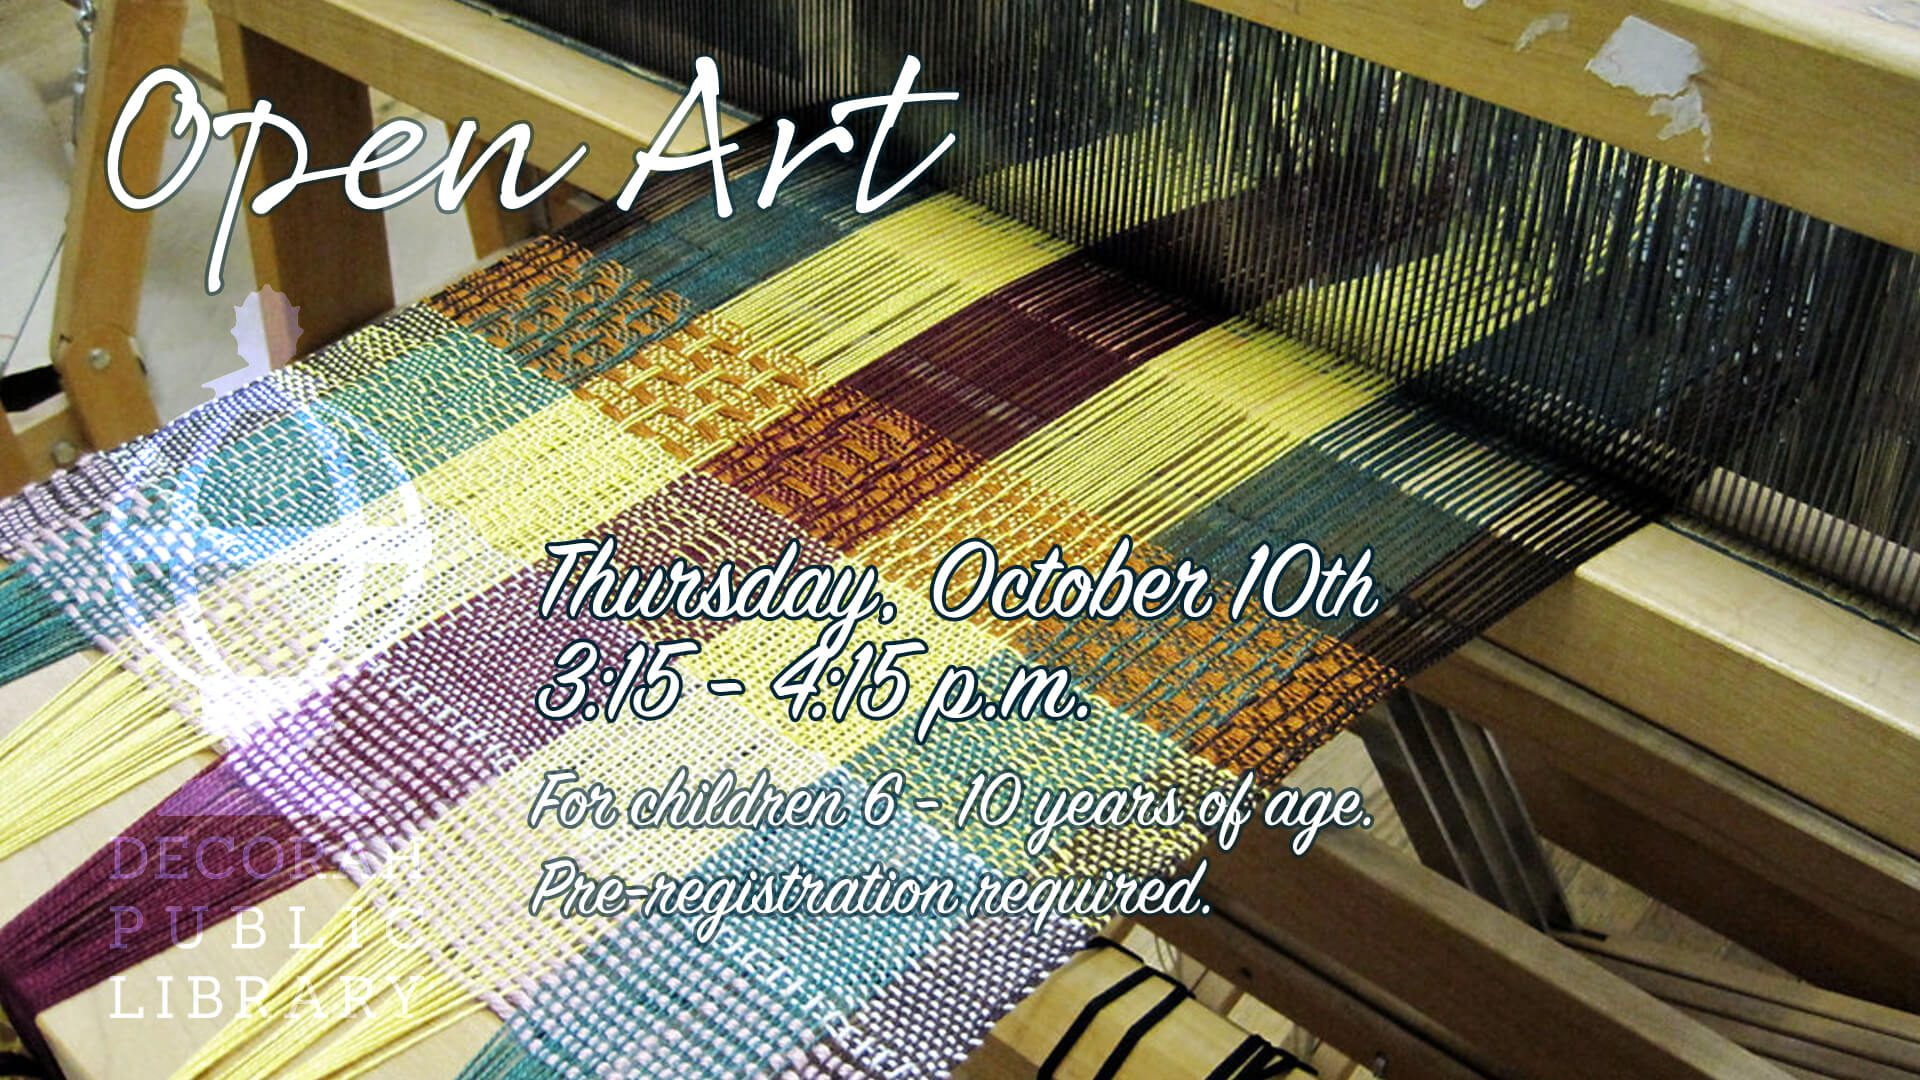 Open Art Oct 10